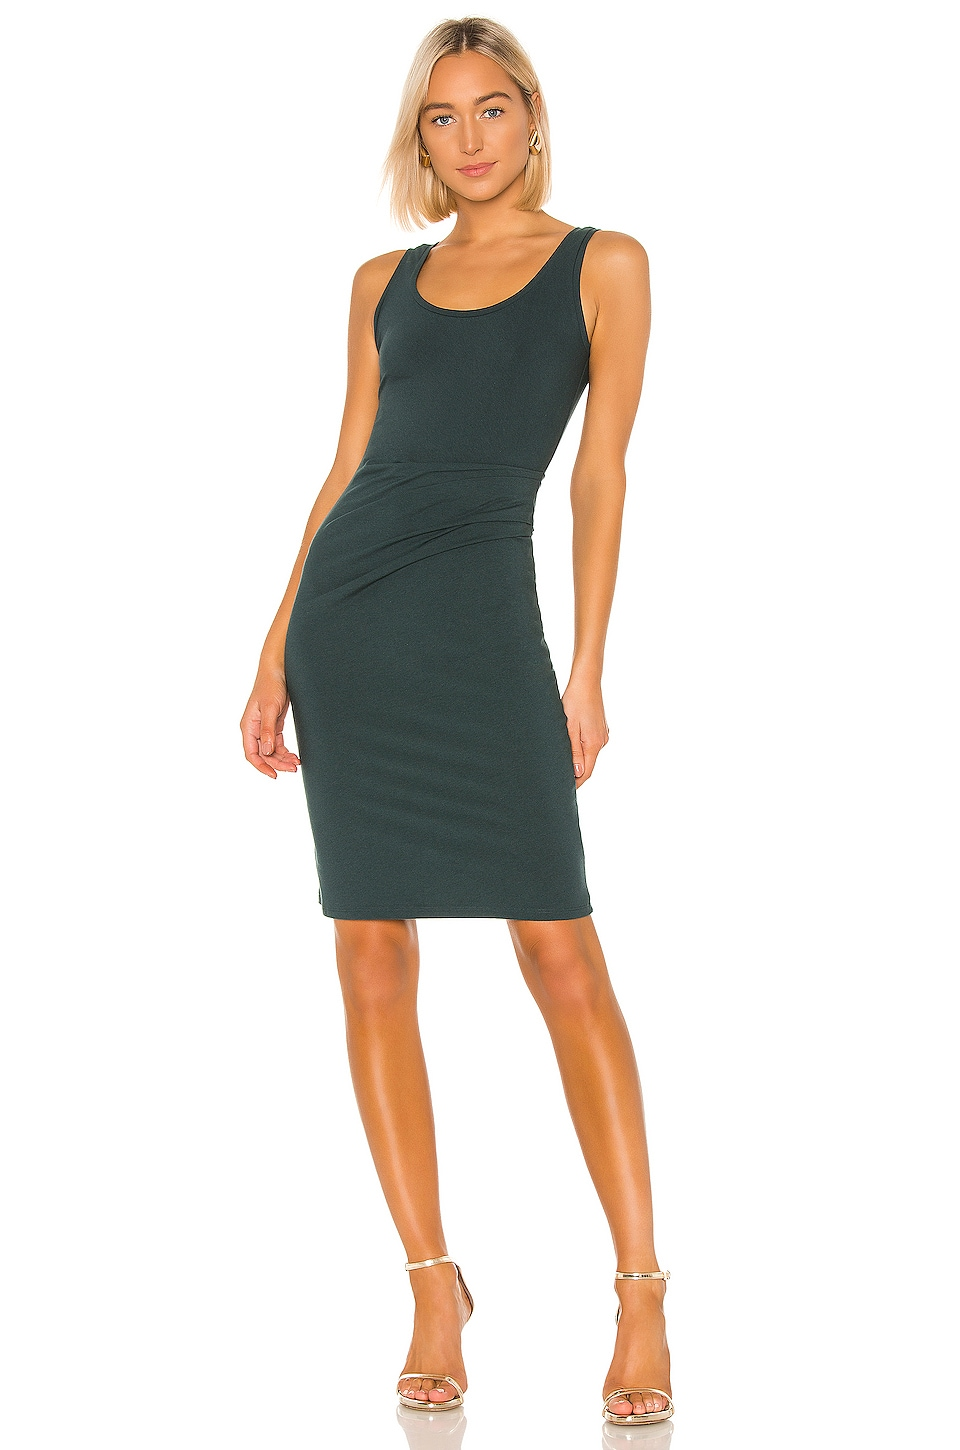 Theory Round Neck Dress in Pine Green